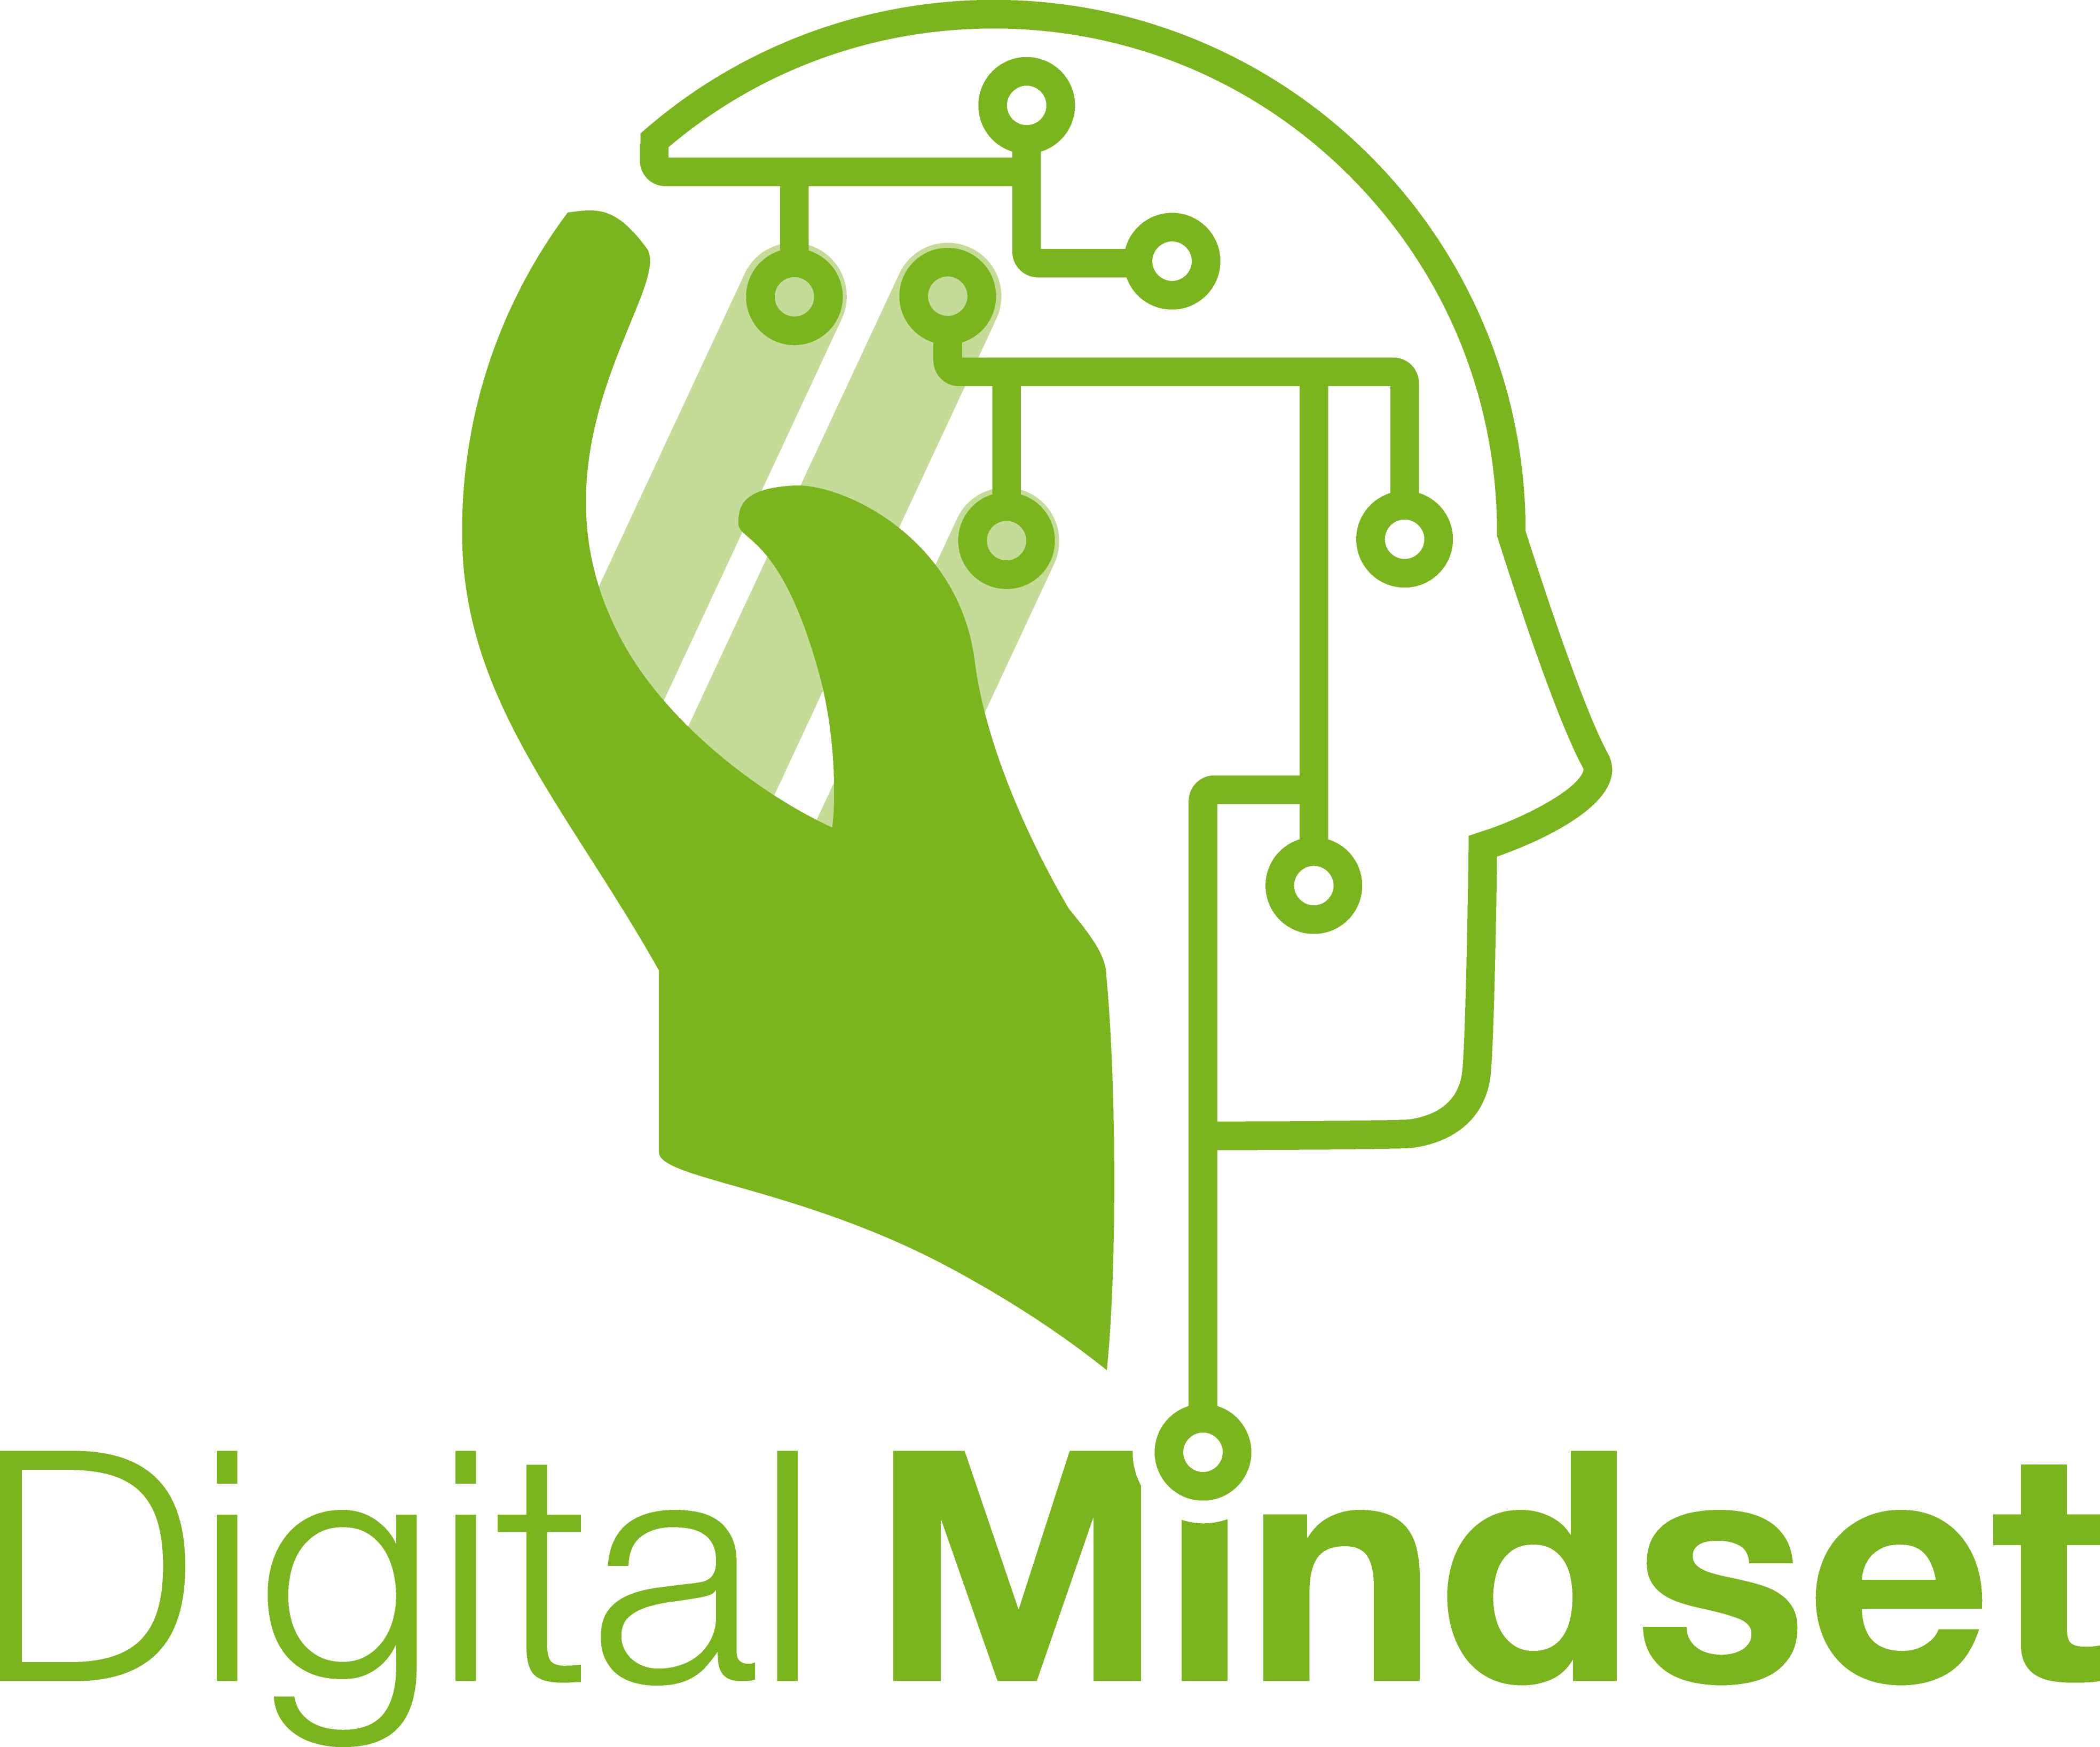 Digital Mindset Logo